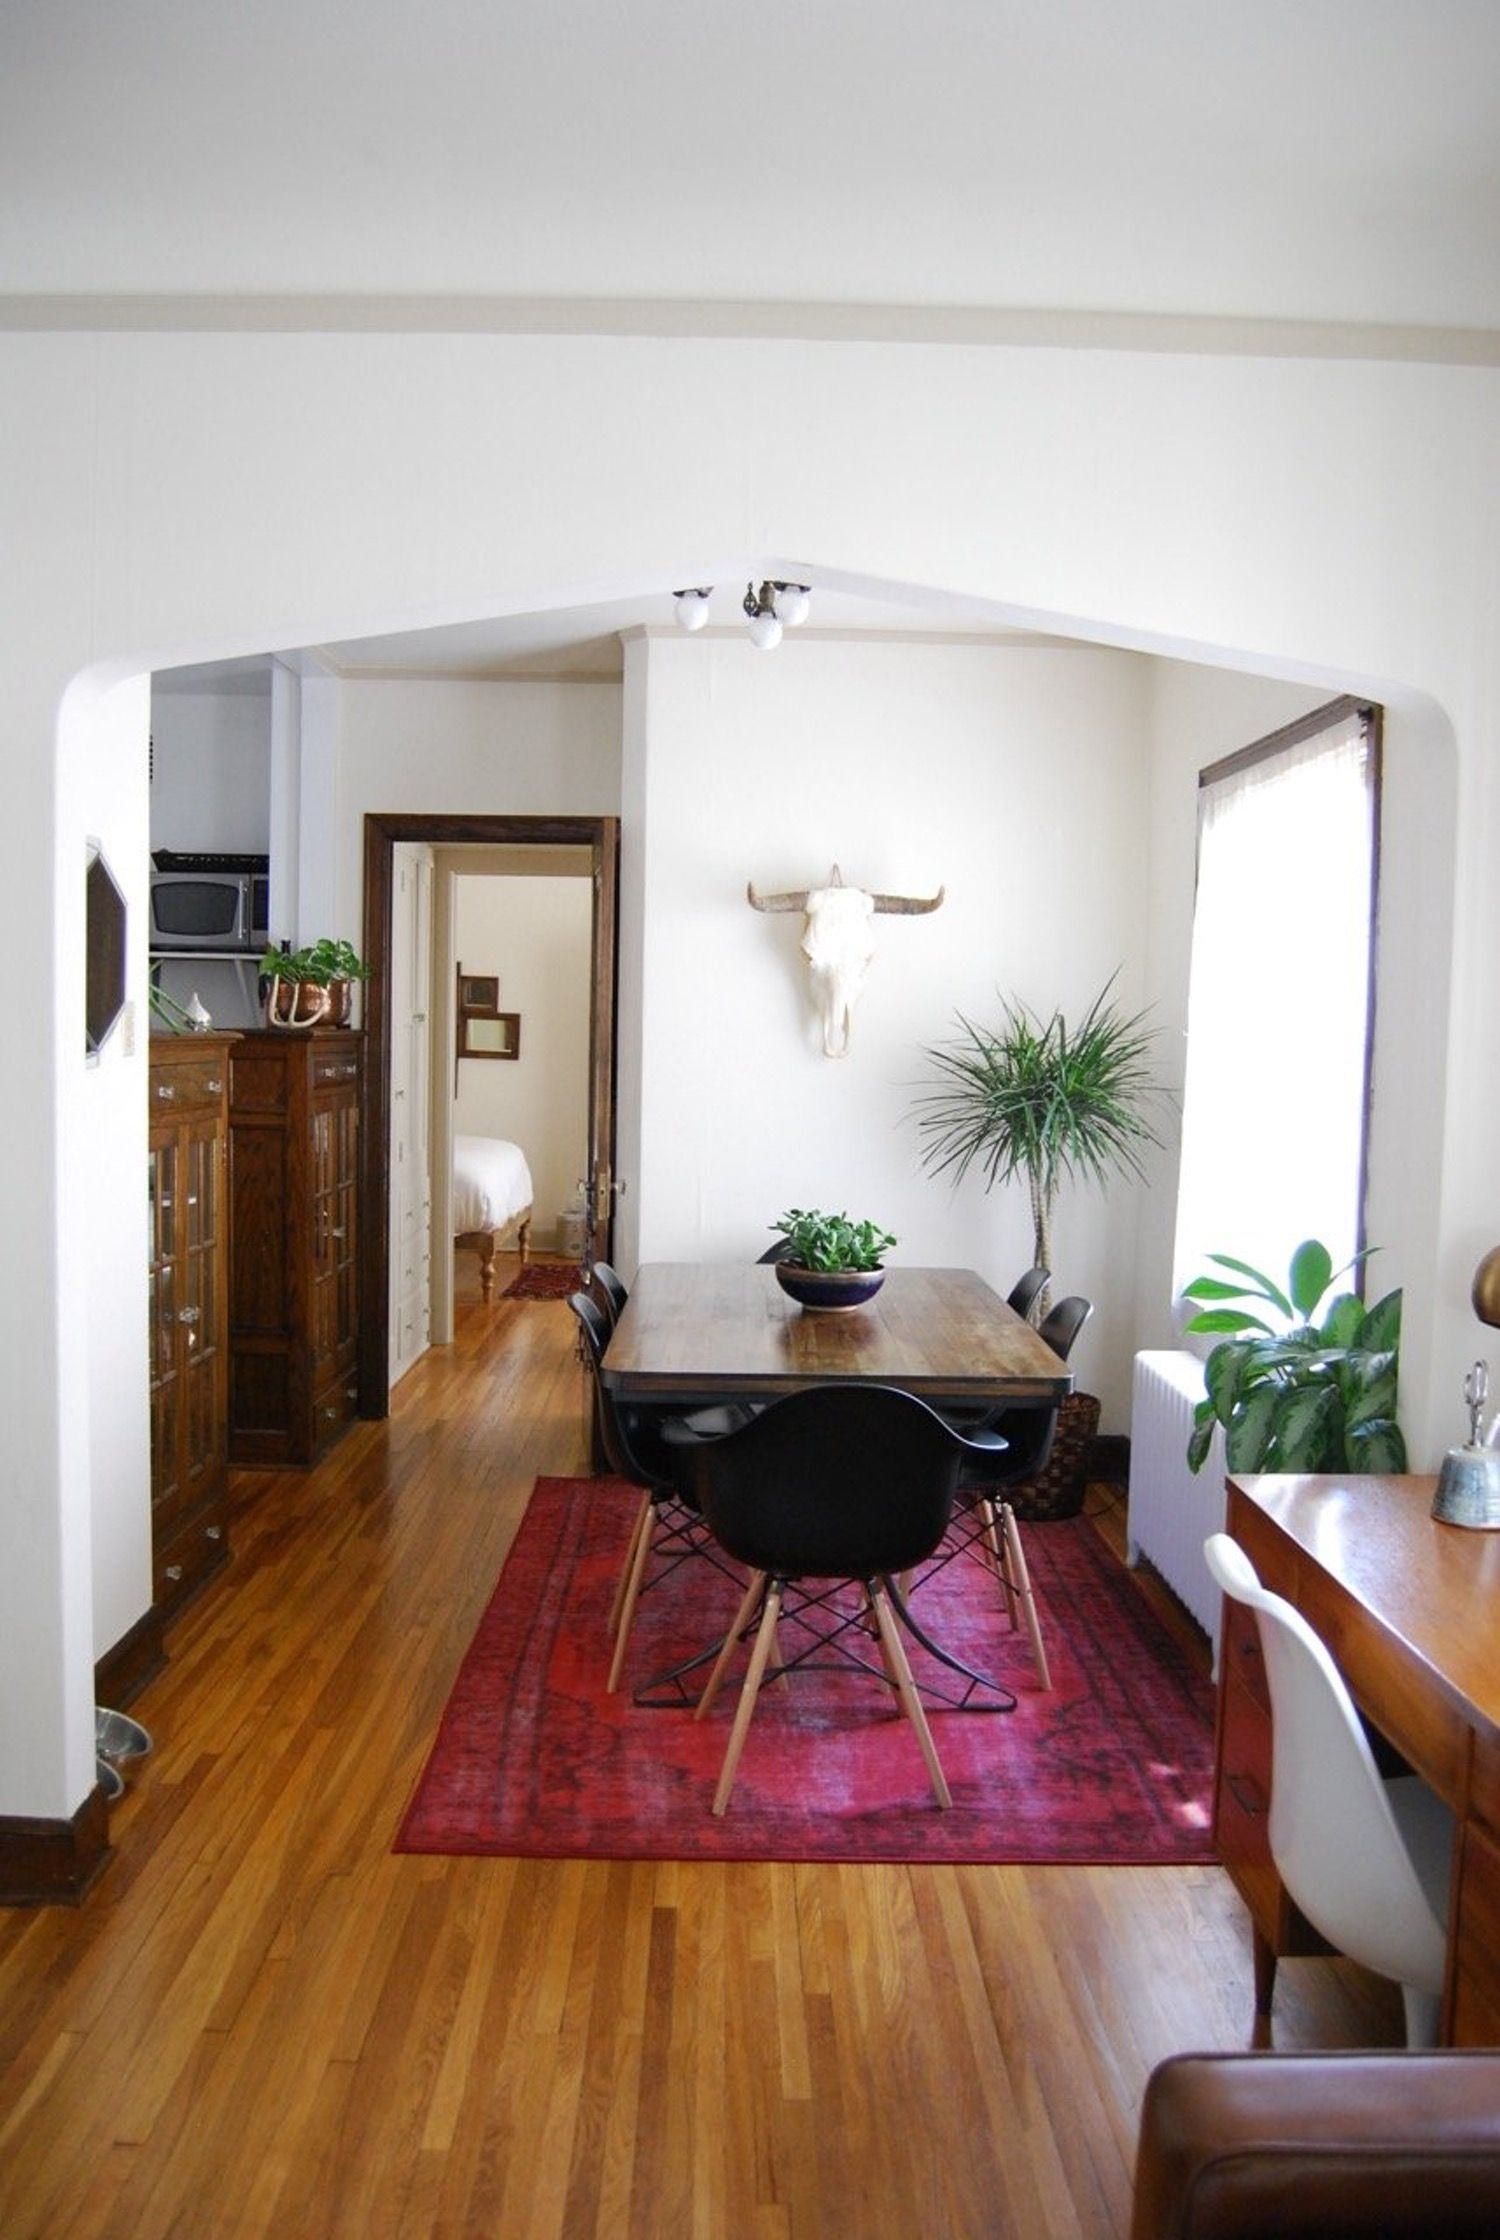 House Tour: An Eclectic, Minimal Minneapolis Apartment | Minneapolis ...